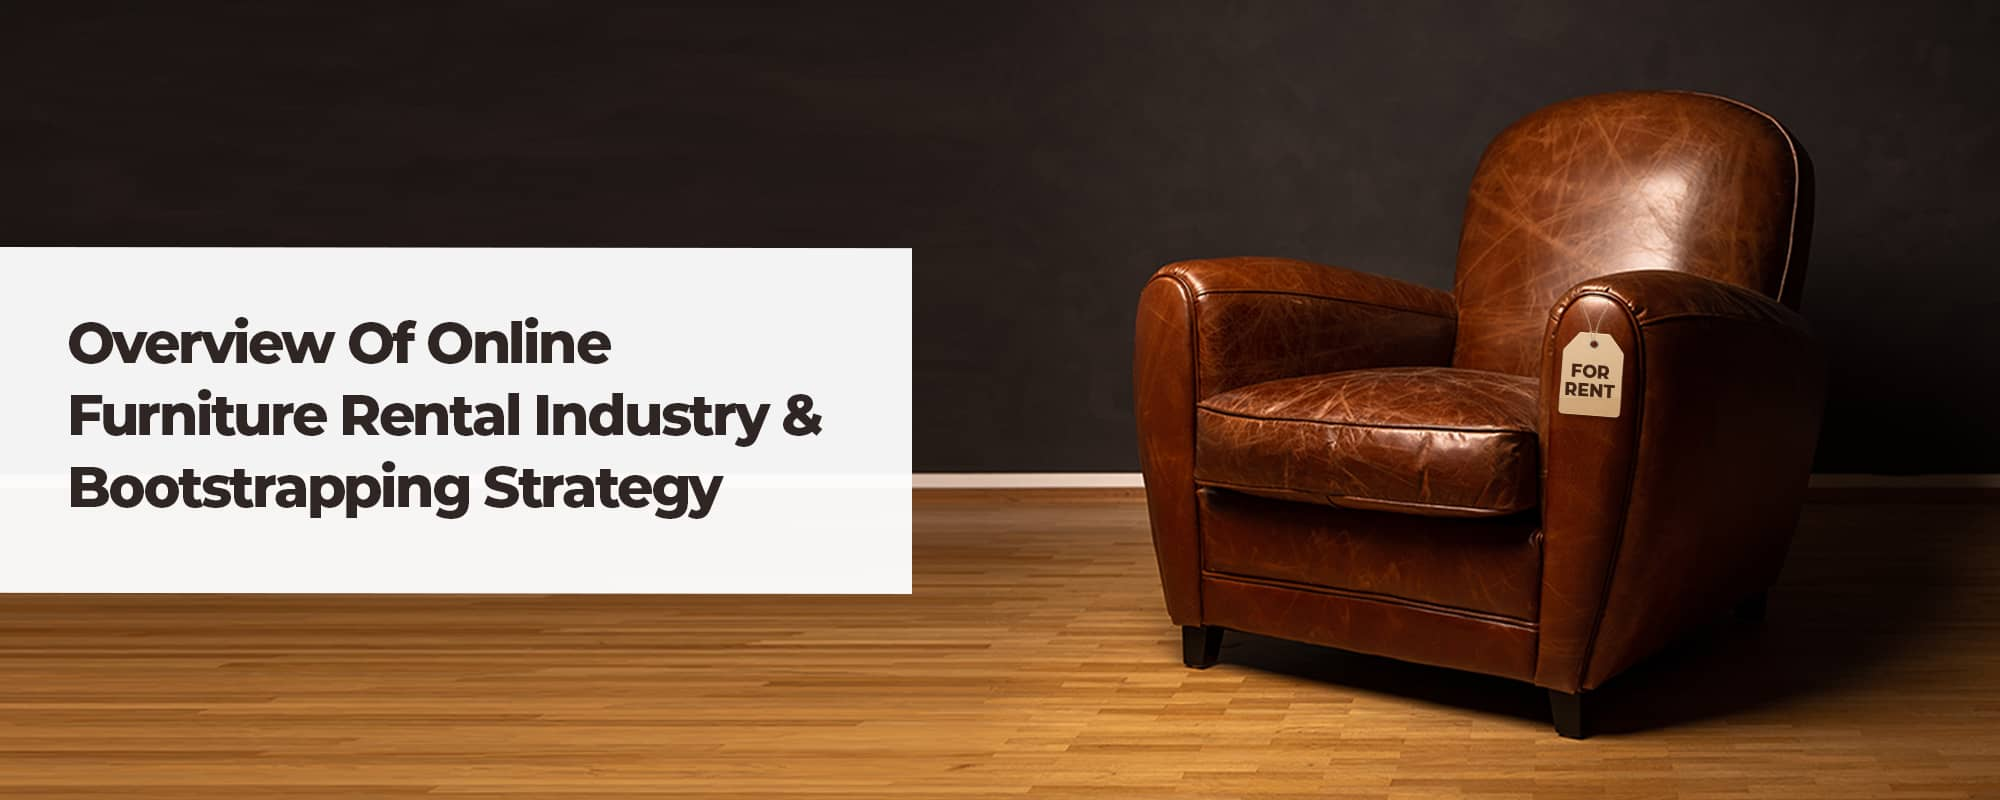 How to Build an Online Furniture Rental Marketplace – Business Model & Key Considerations